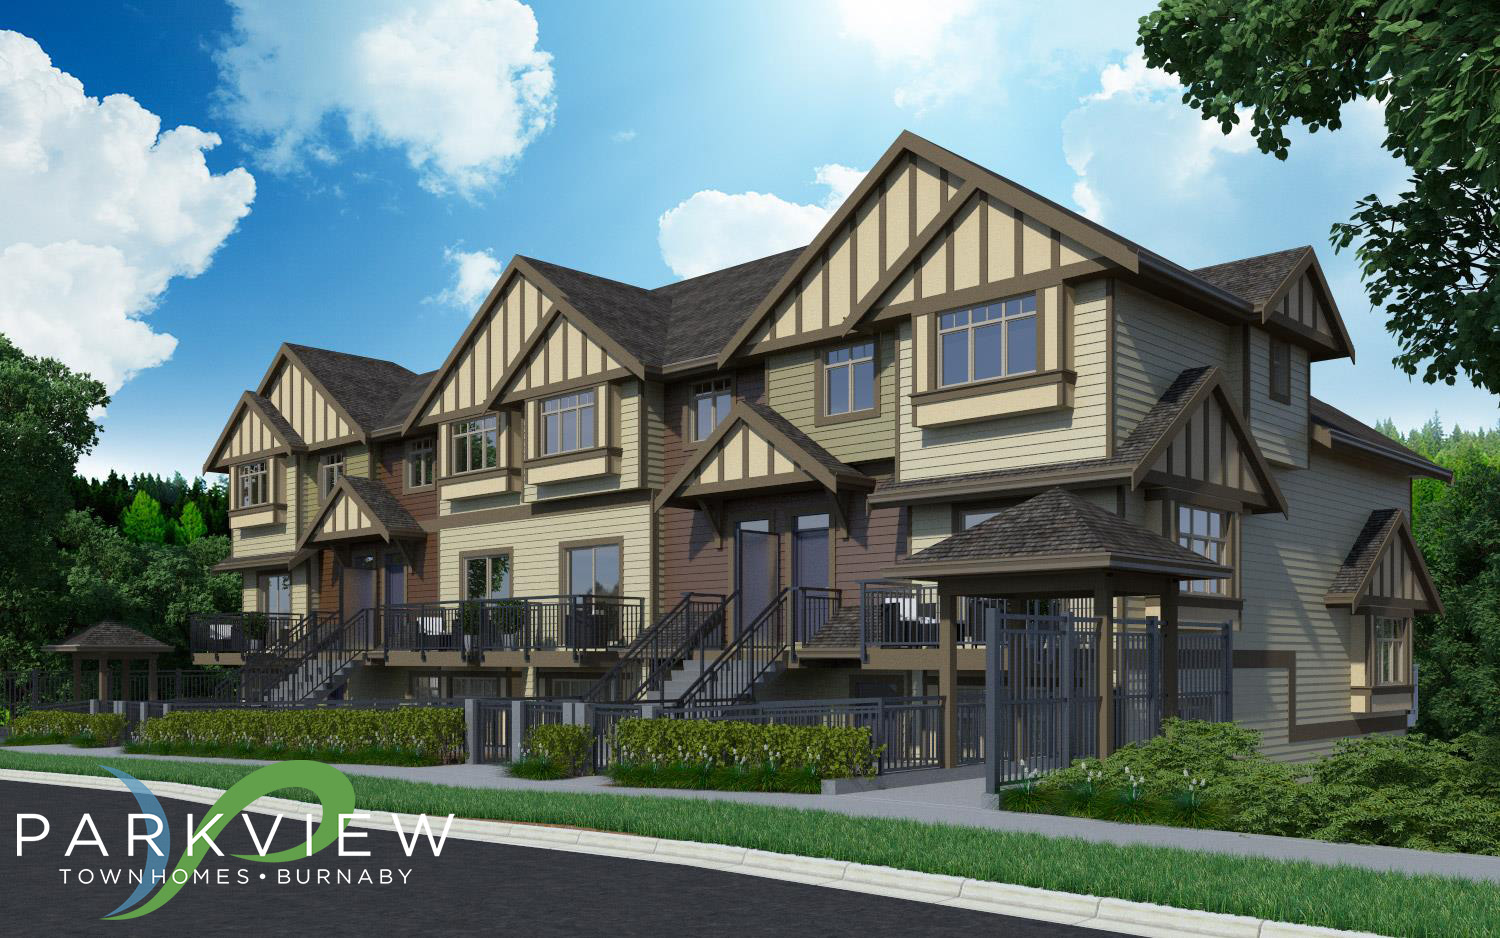 Parkview Townhomes